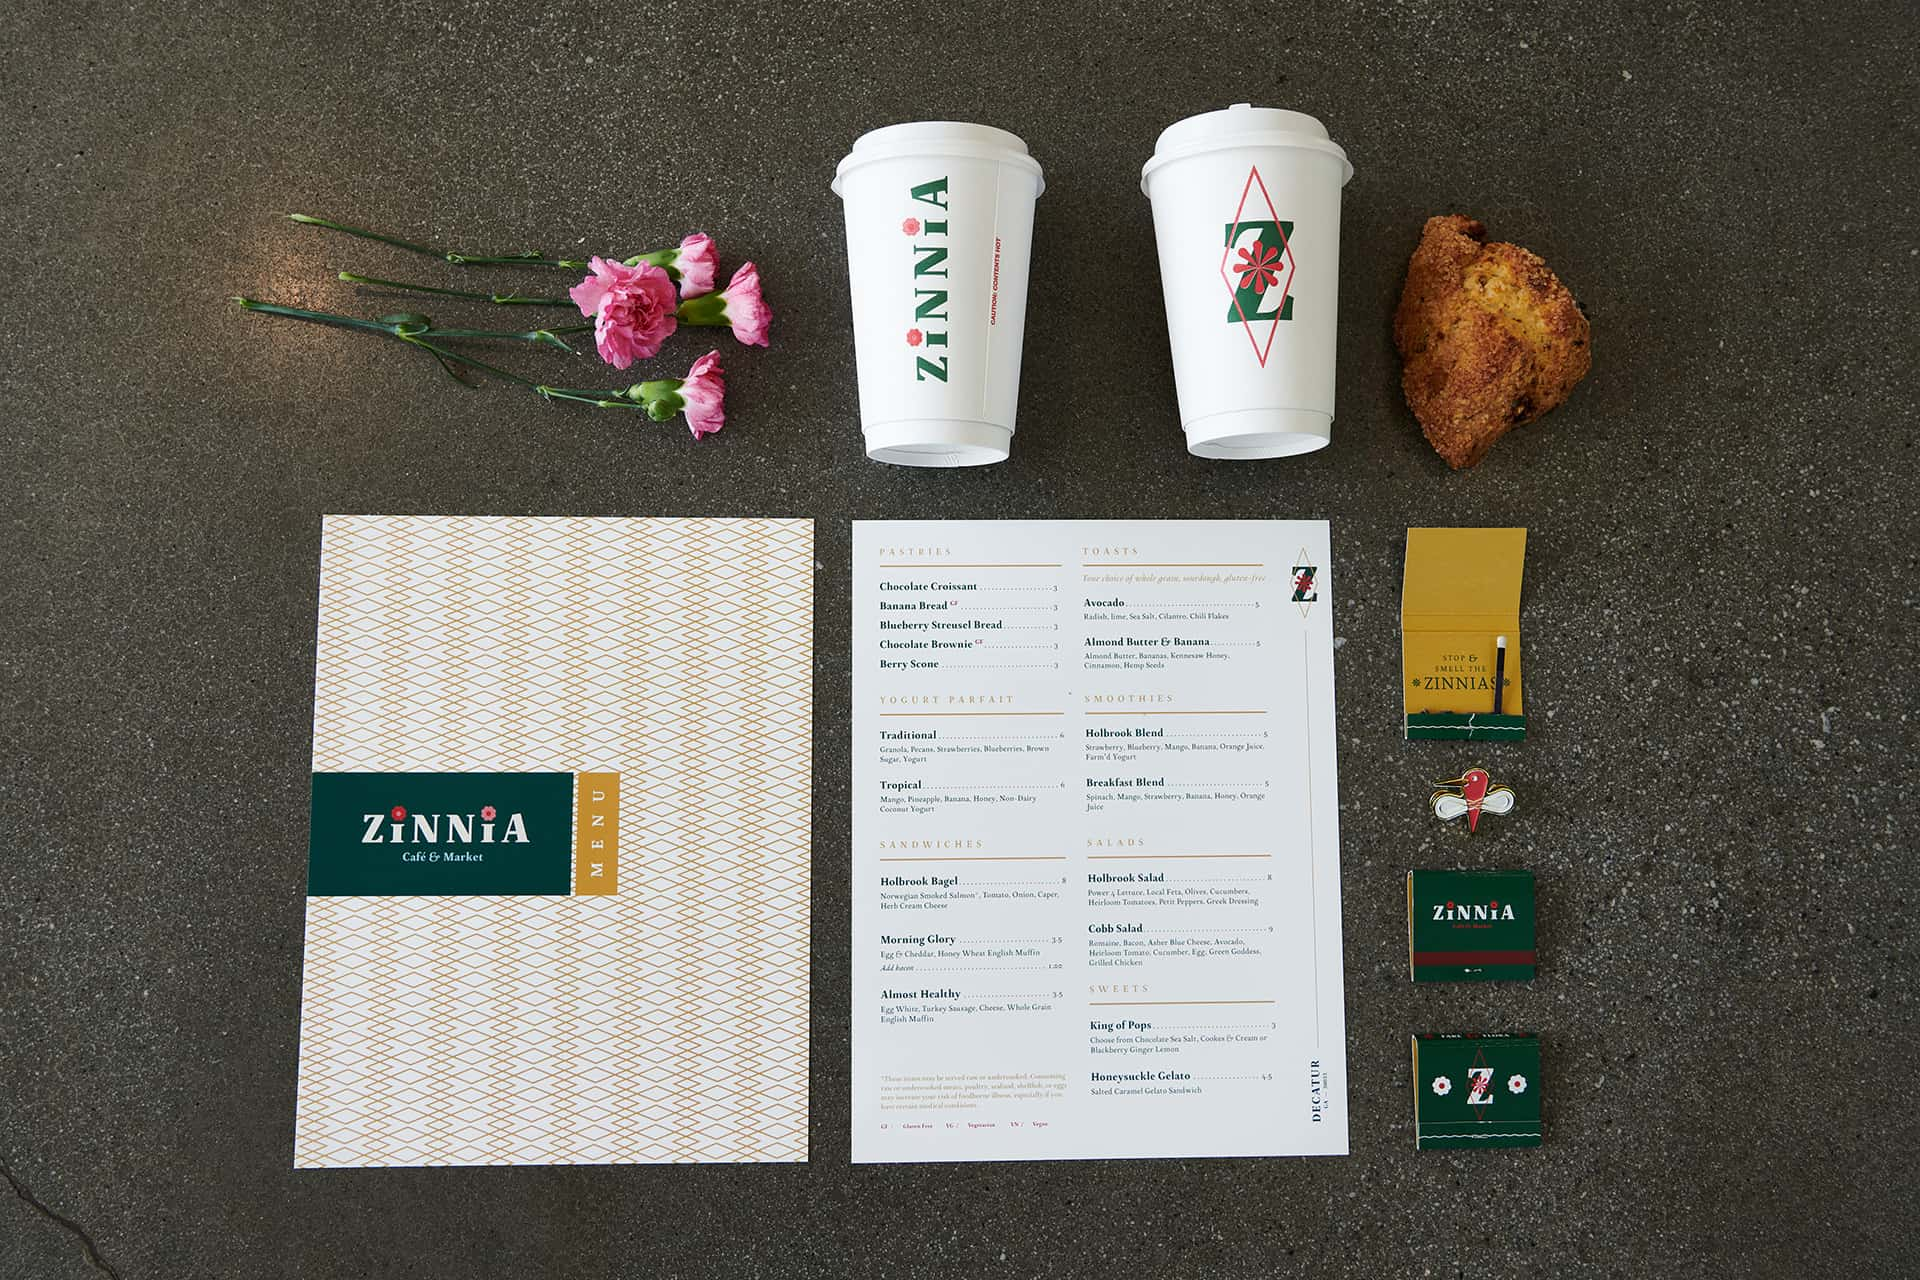 Zinnia bakery and cafe branding packaging and menu design